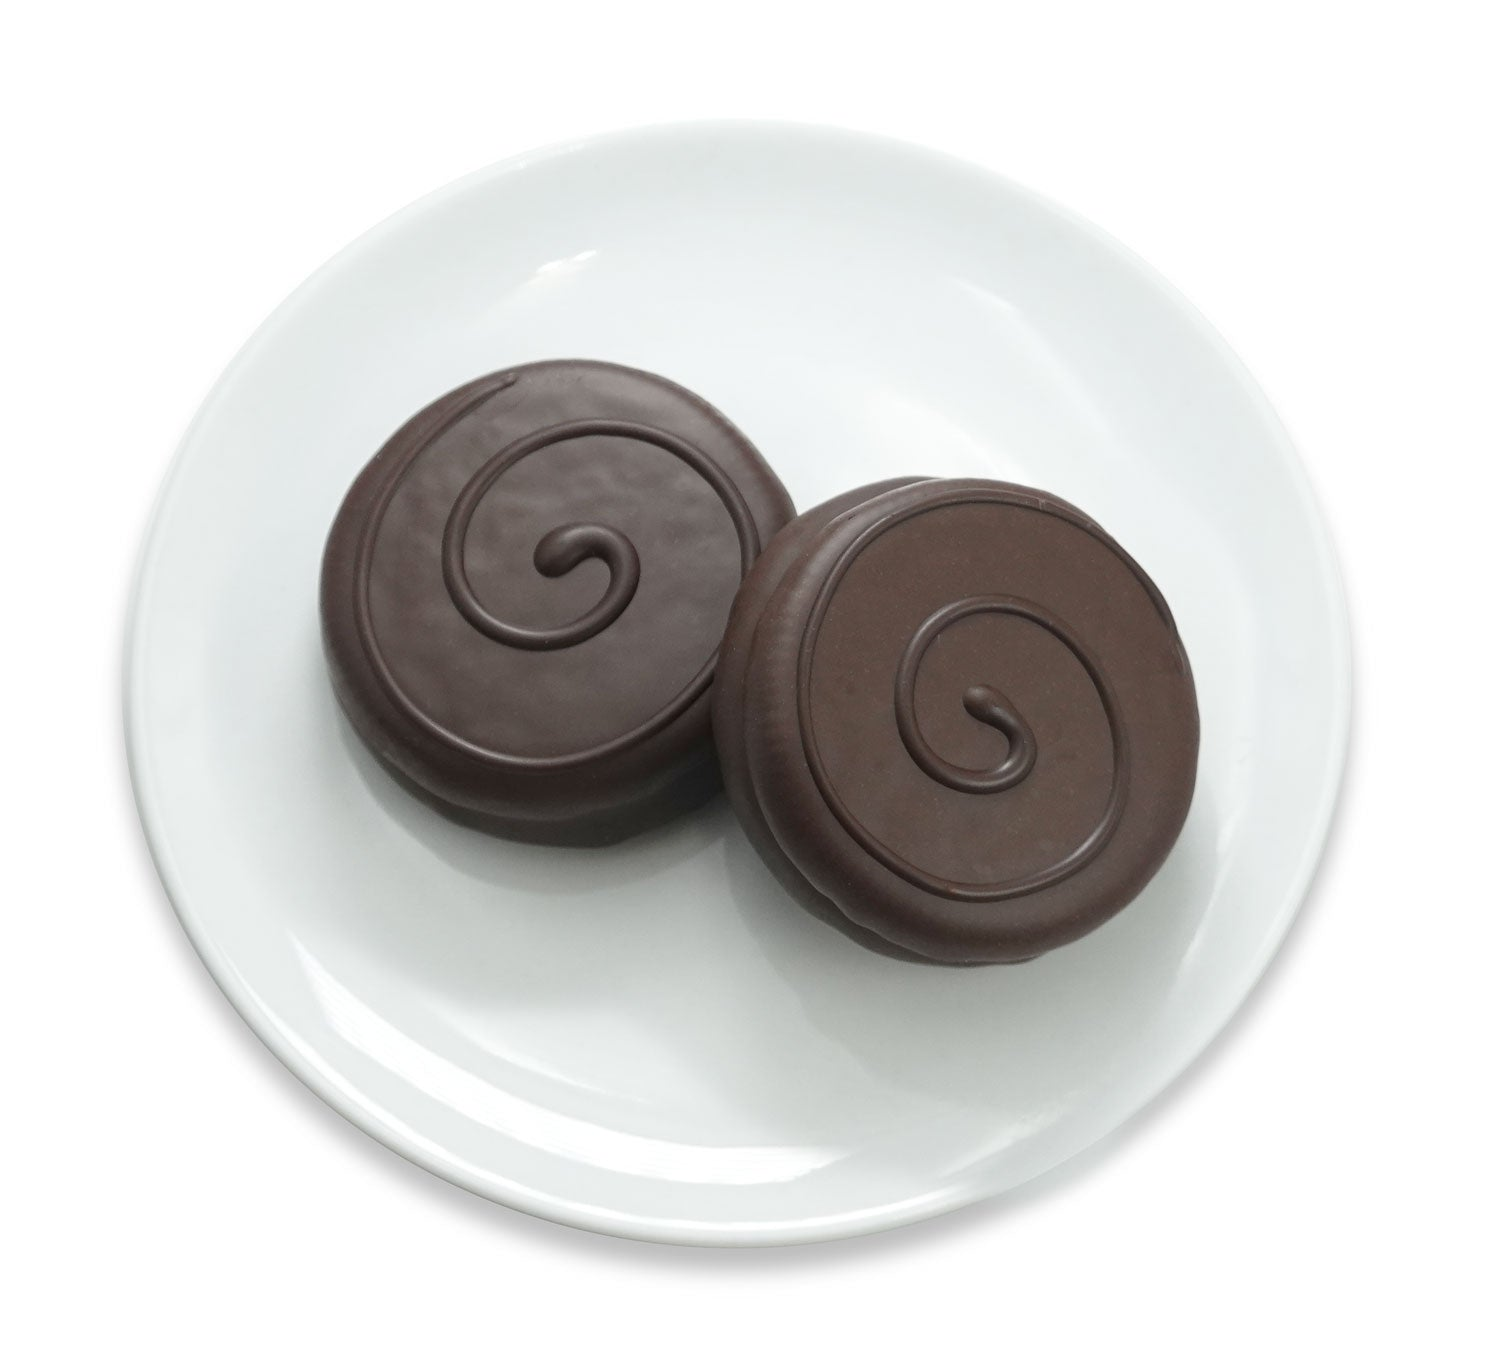 Vegan 70% Dark Chocolate 2 pc. Newmans-O's™